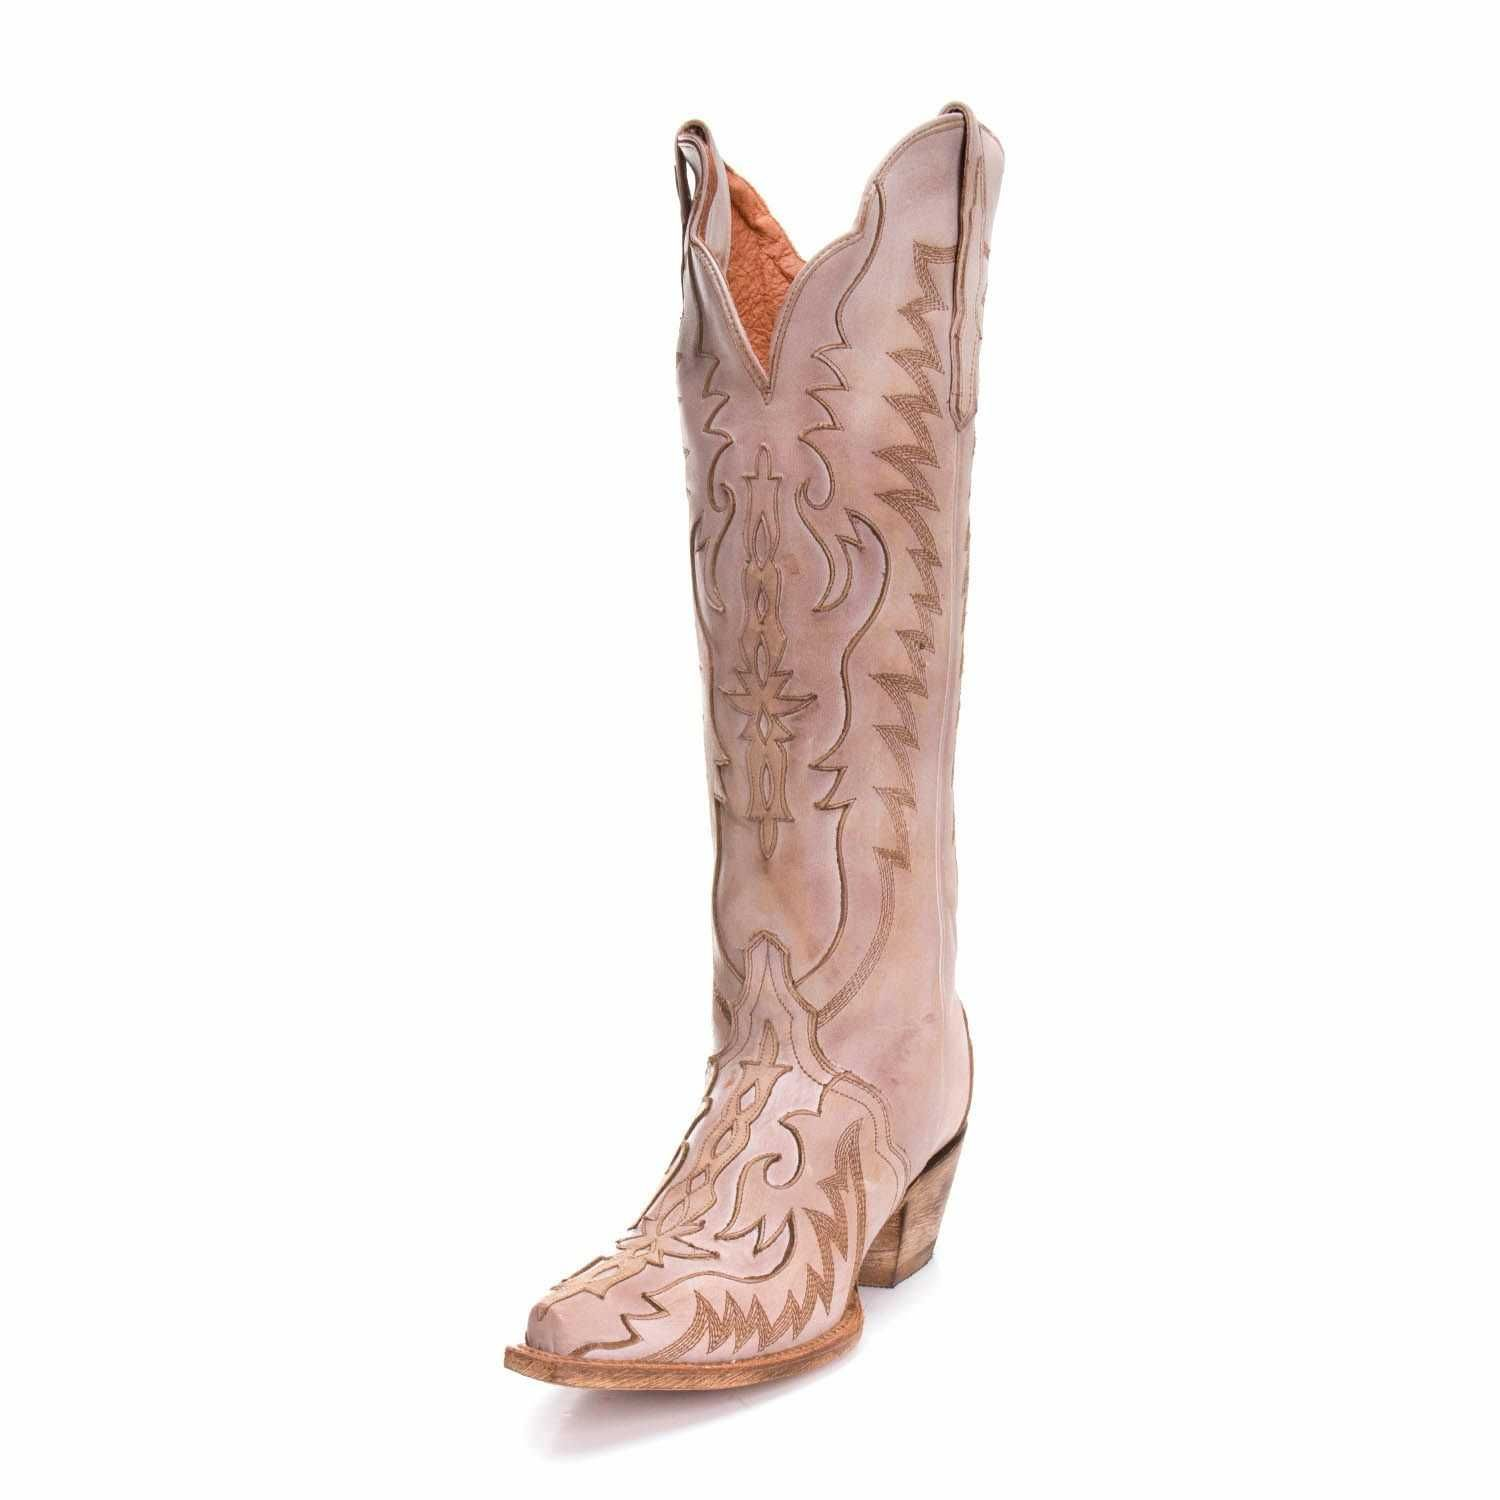 c62fe8d761d Dan Post Womens Hallie Flame Inlay Tall Boots DP4026 in 2019